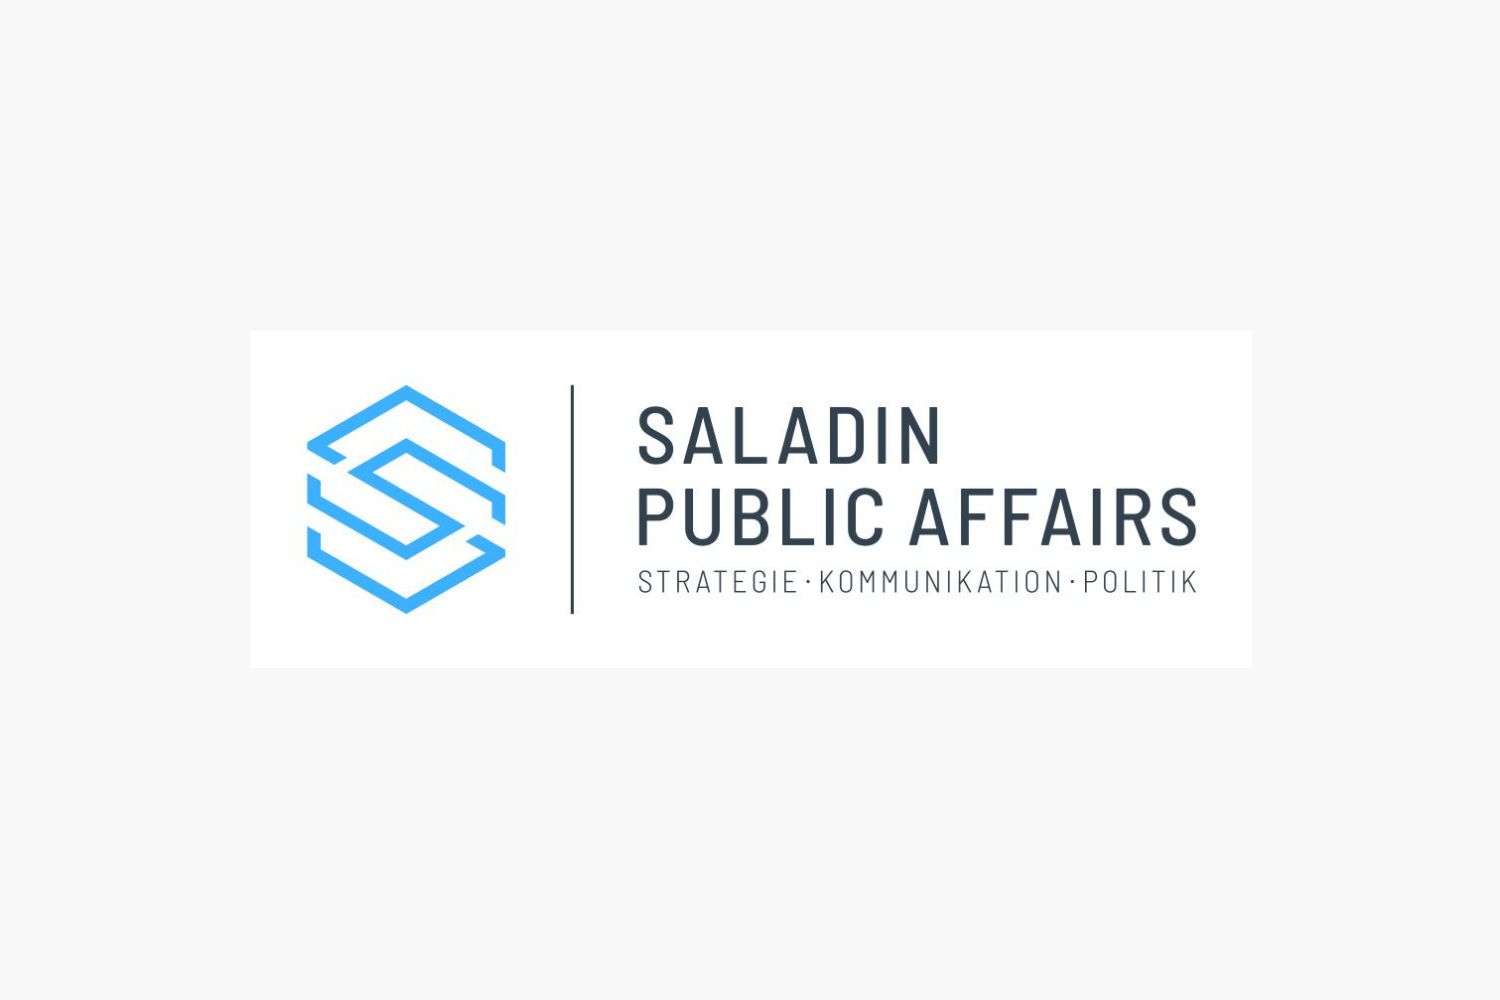 Saladin Public Affairs - Website Design, Search Engine Optimization SEO, CI/CD optimization and Content Marketing consulting for Saladin Public Affairs.